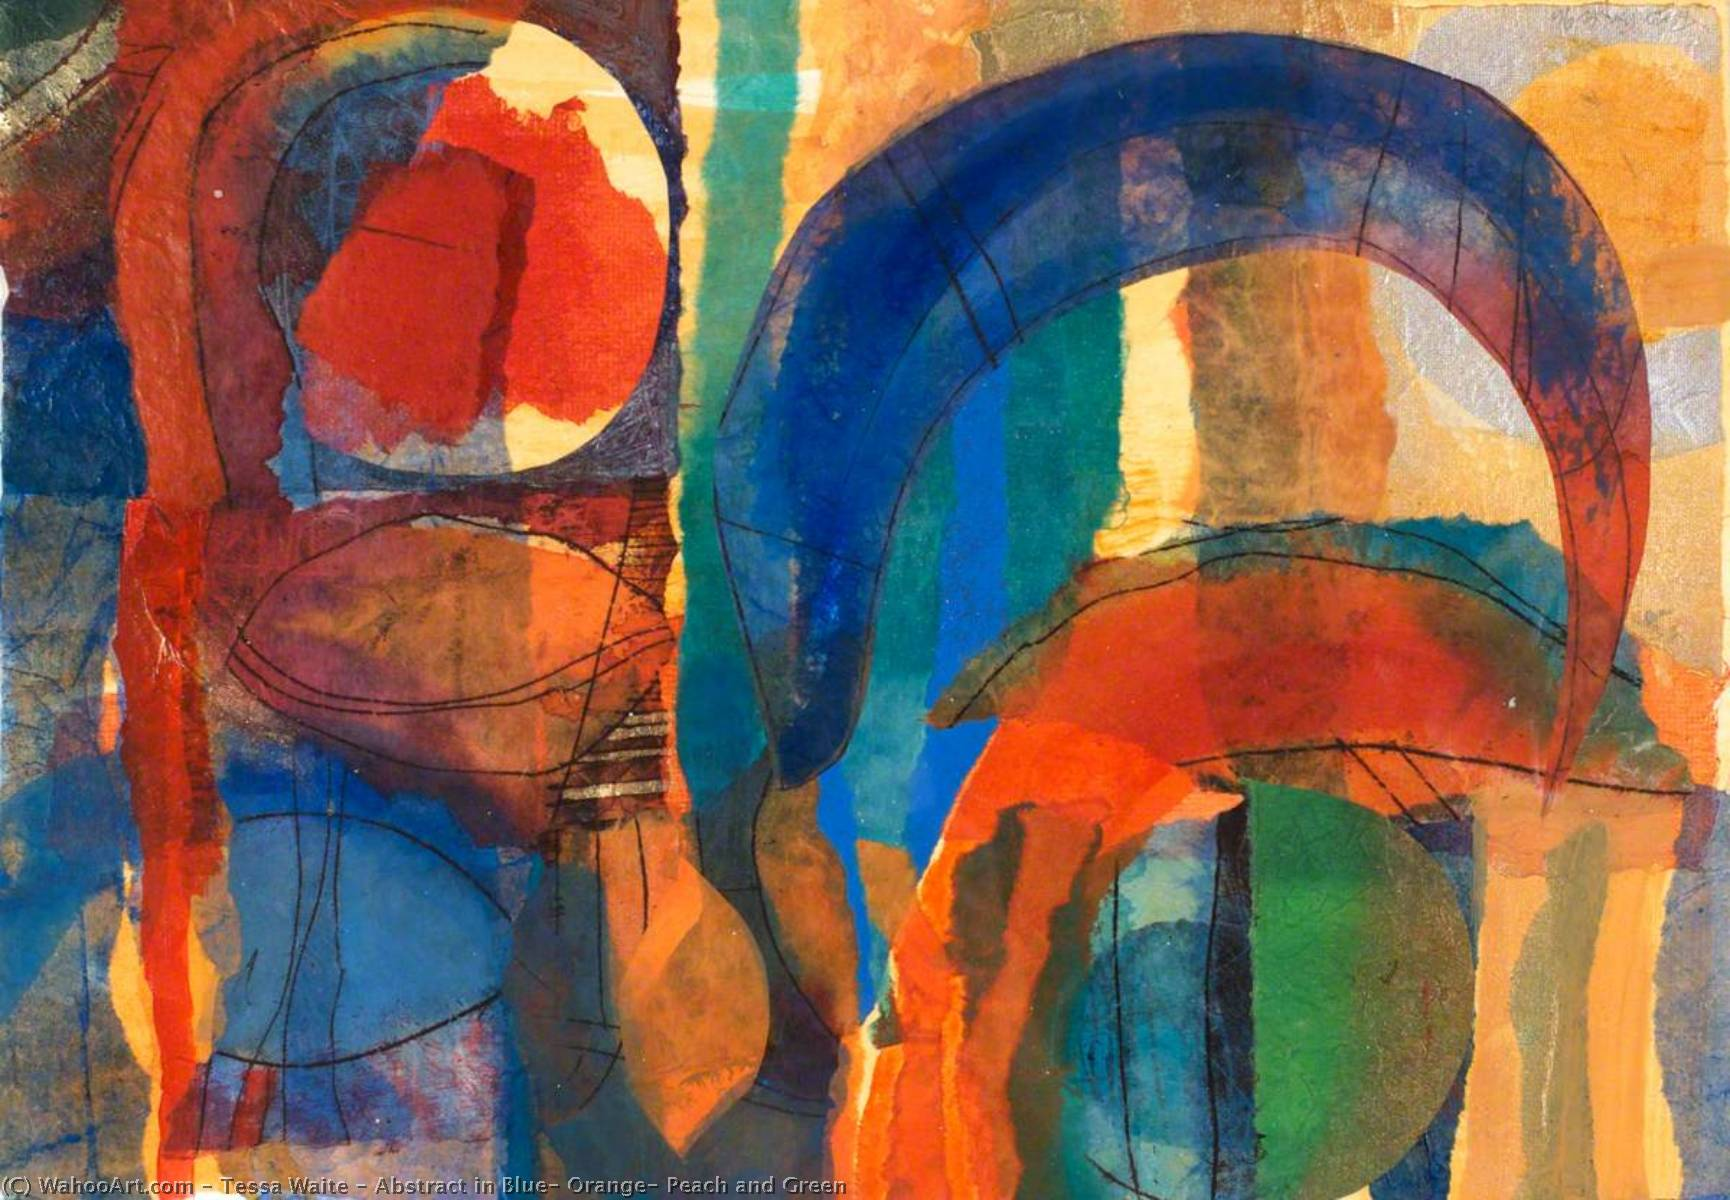 Abstract in Blue, Orange, Peach and Green, Paper by Tessa Waite